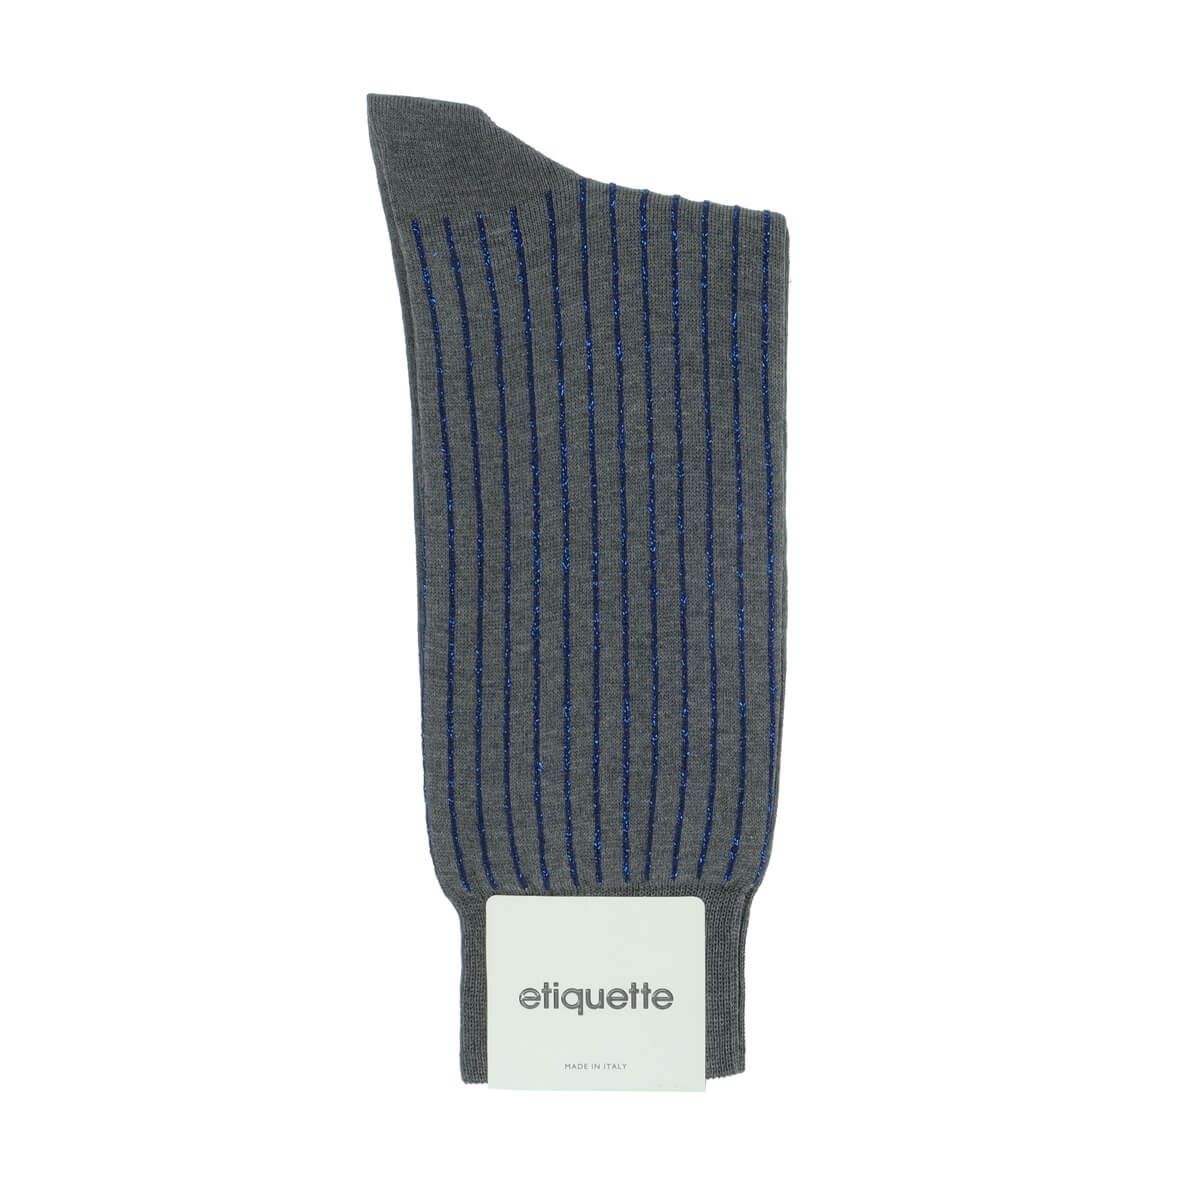 Mens Socks - Royal Ribs Metallic Men's Socks - Dark Grey⎪Etiquette Clothiers